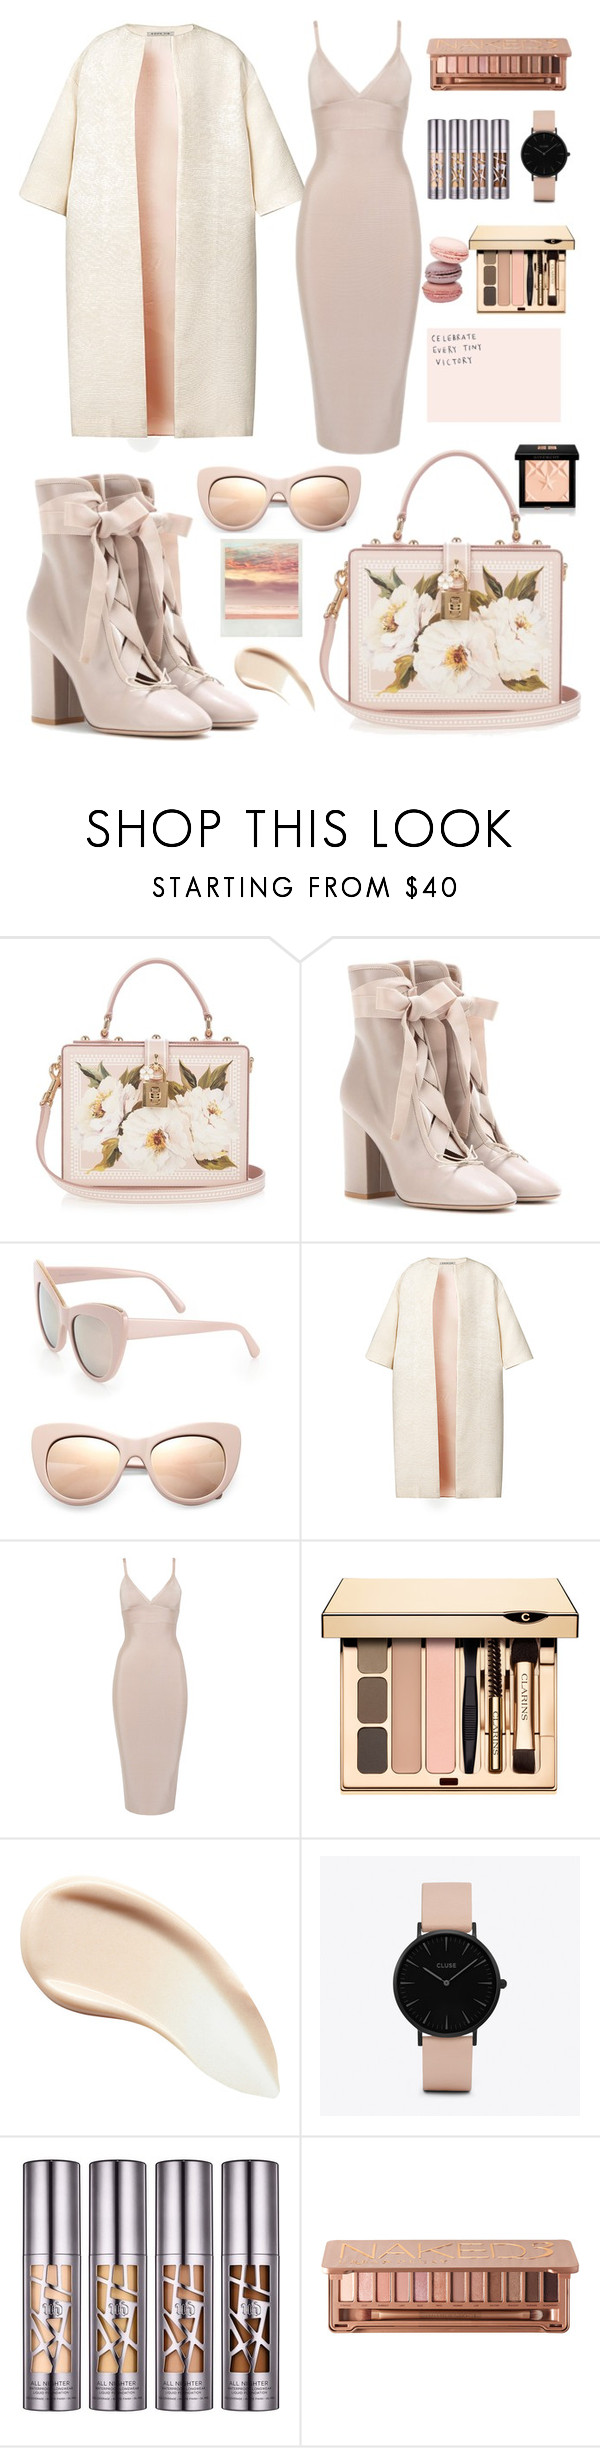 """""""Nude Fall"""" by nada2003 ❤ liked on Polyvore featuring Dolce&Gabbana, Valentino, STELLA McCARTNEY, Esme Vie, Burberry, CLUSE, Urban Decay and Givenchy"""